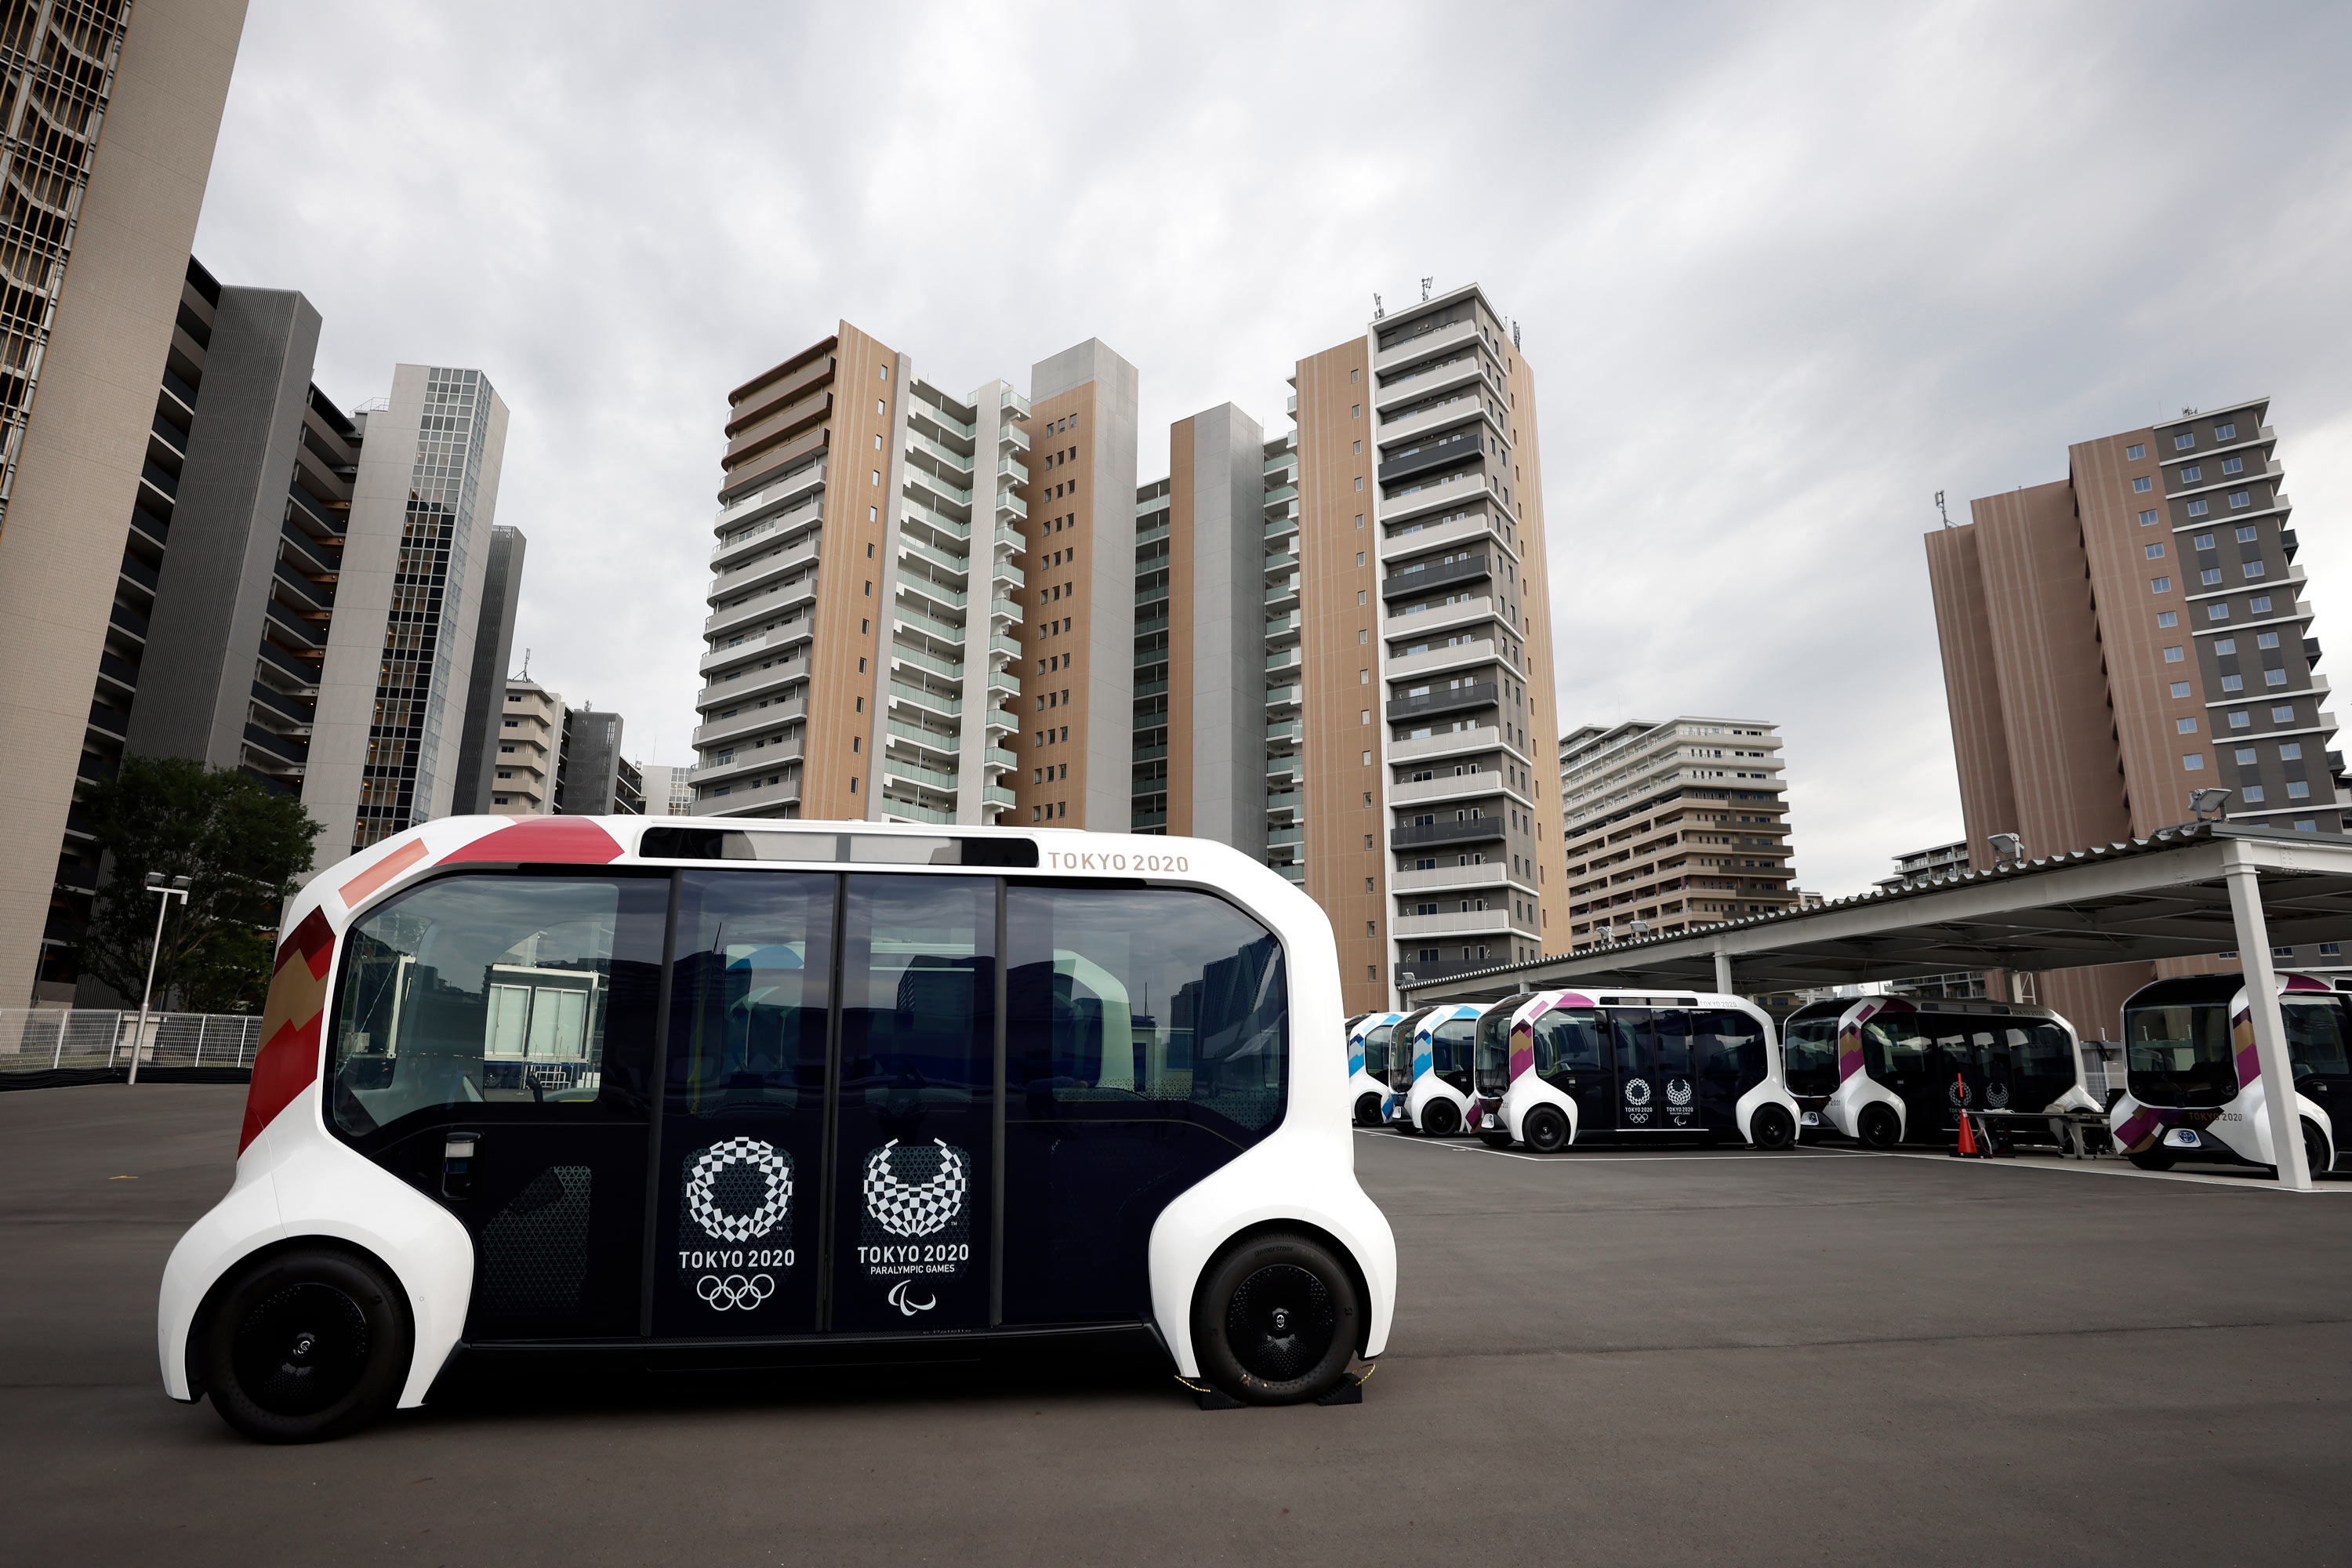 Toyota will restart its operations of its autonomous vehicles at the Paralympic Games village in Tokyo following an accident.